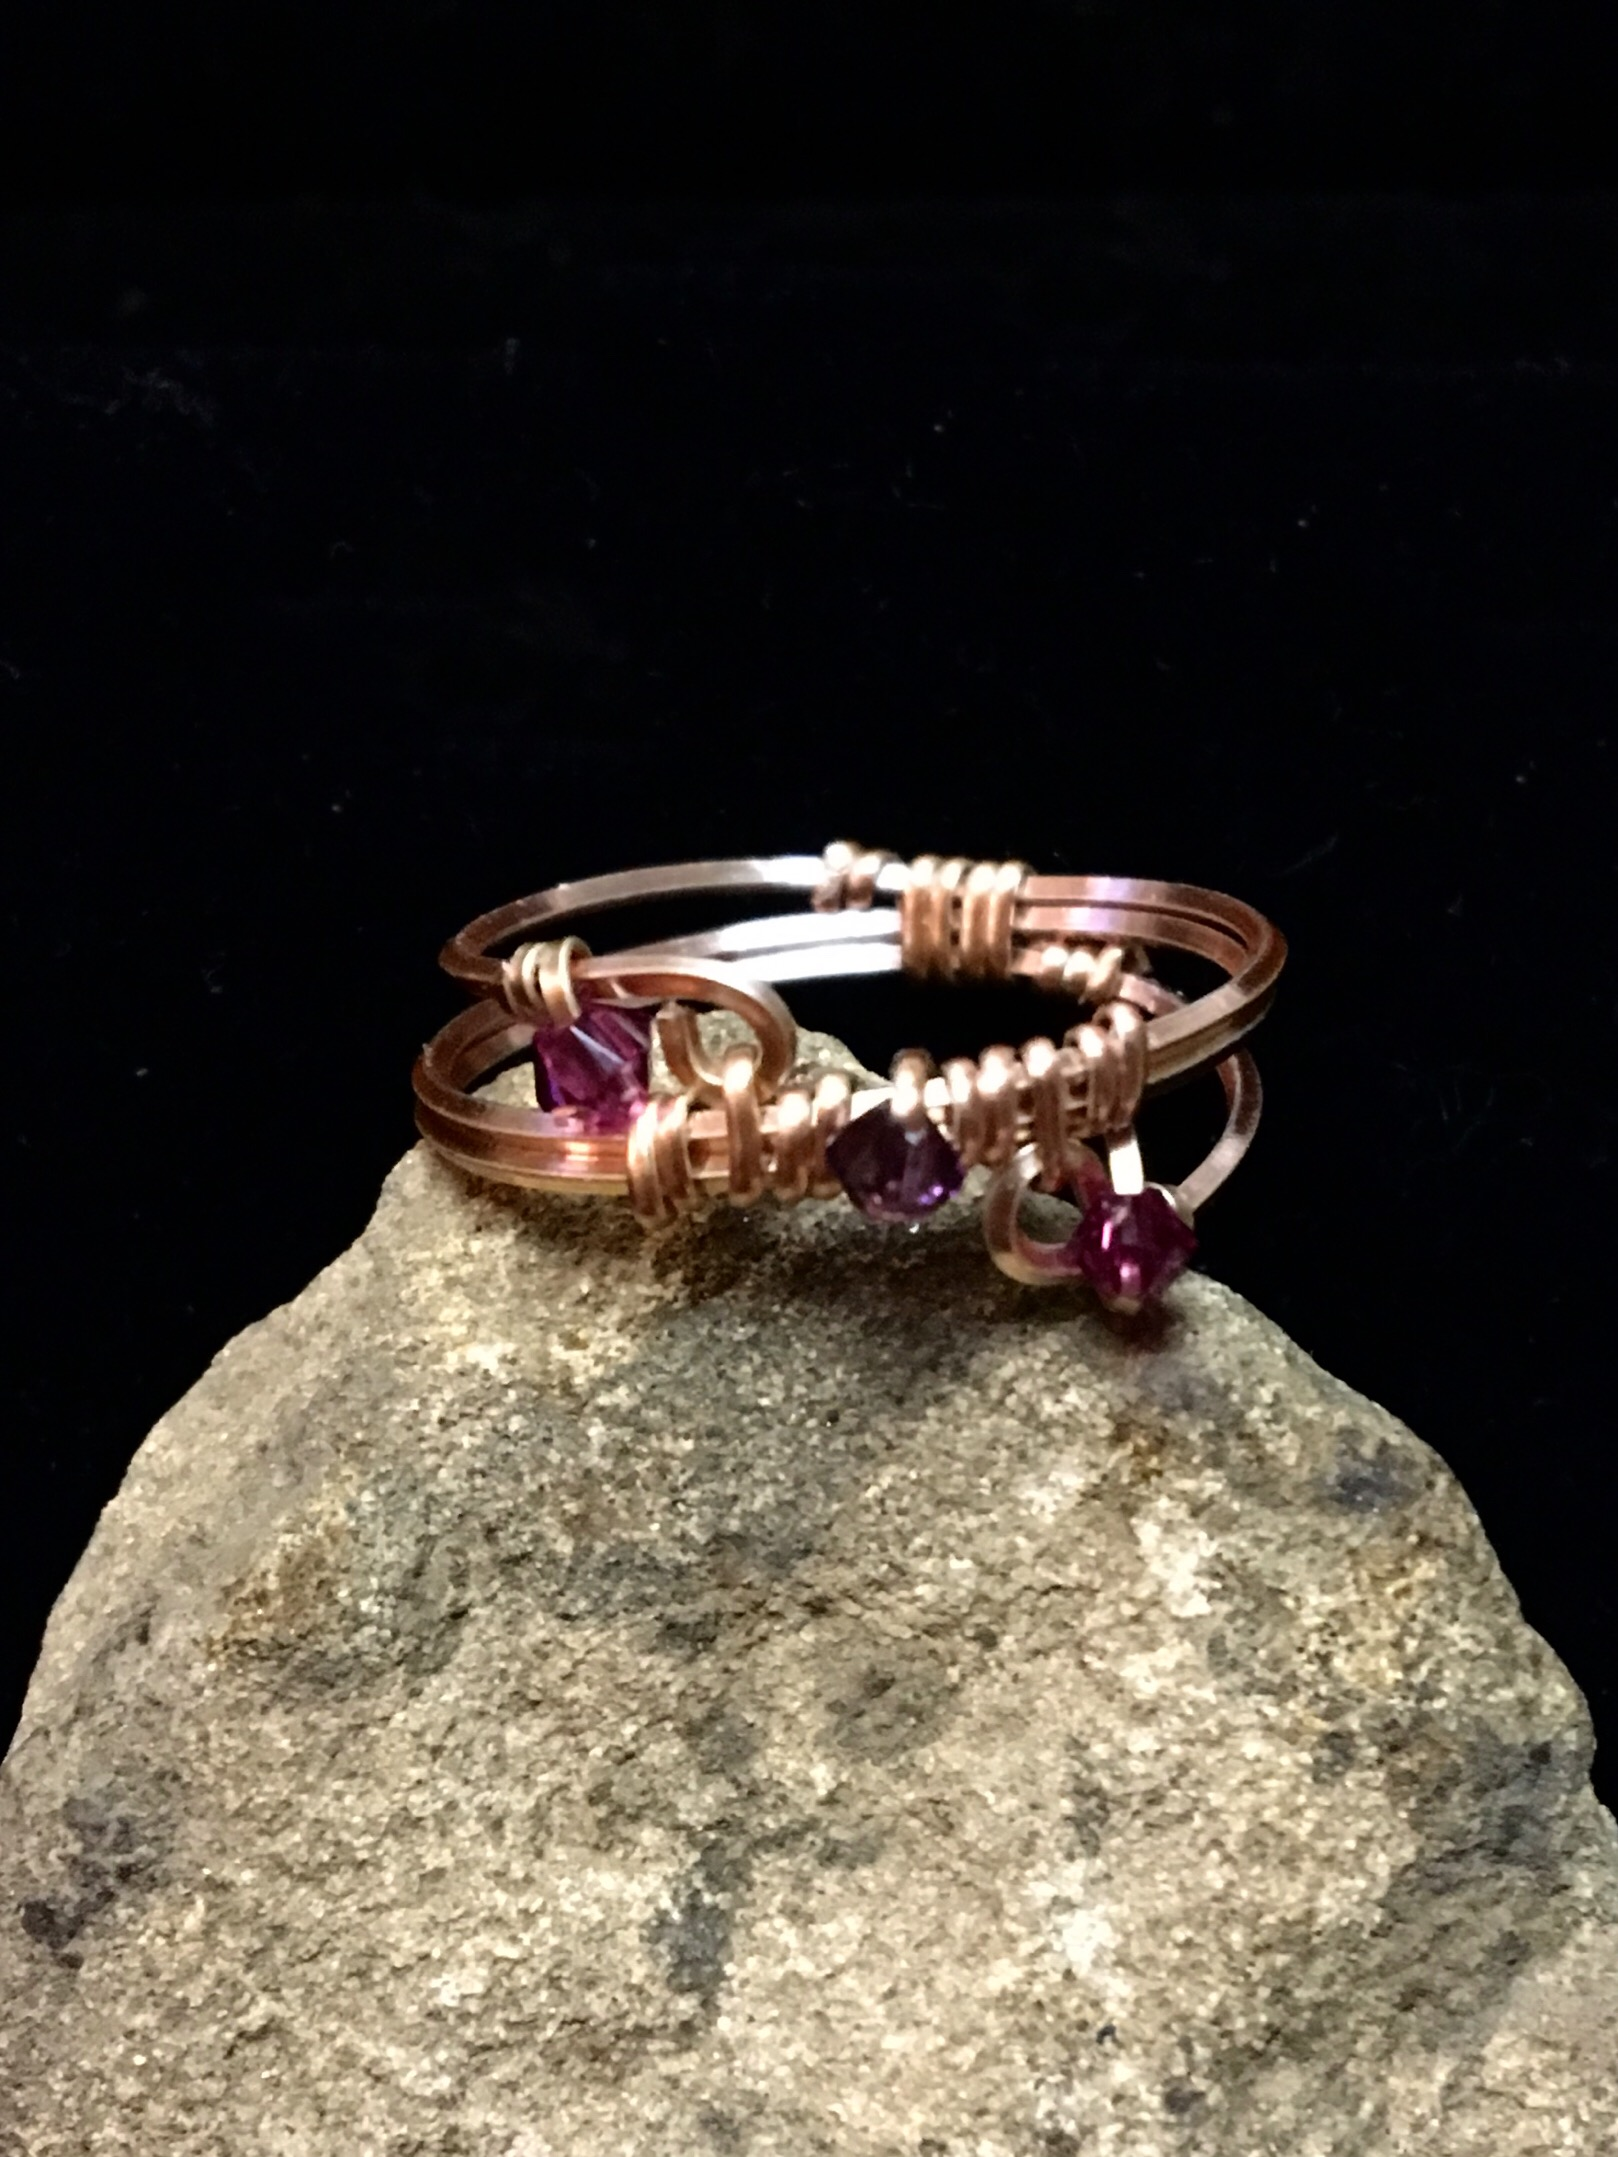 Dainty Deva Ring - Silver Plated Rose Gold Color